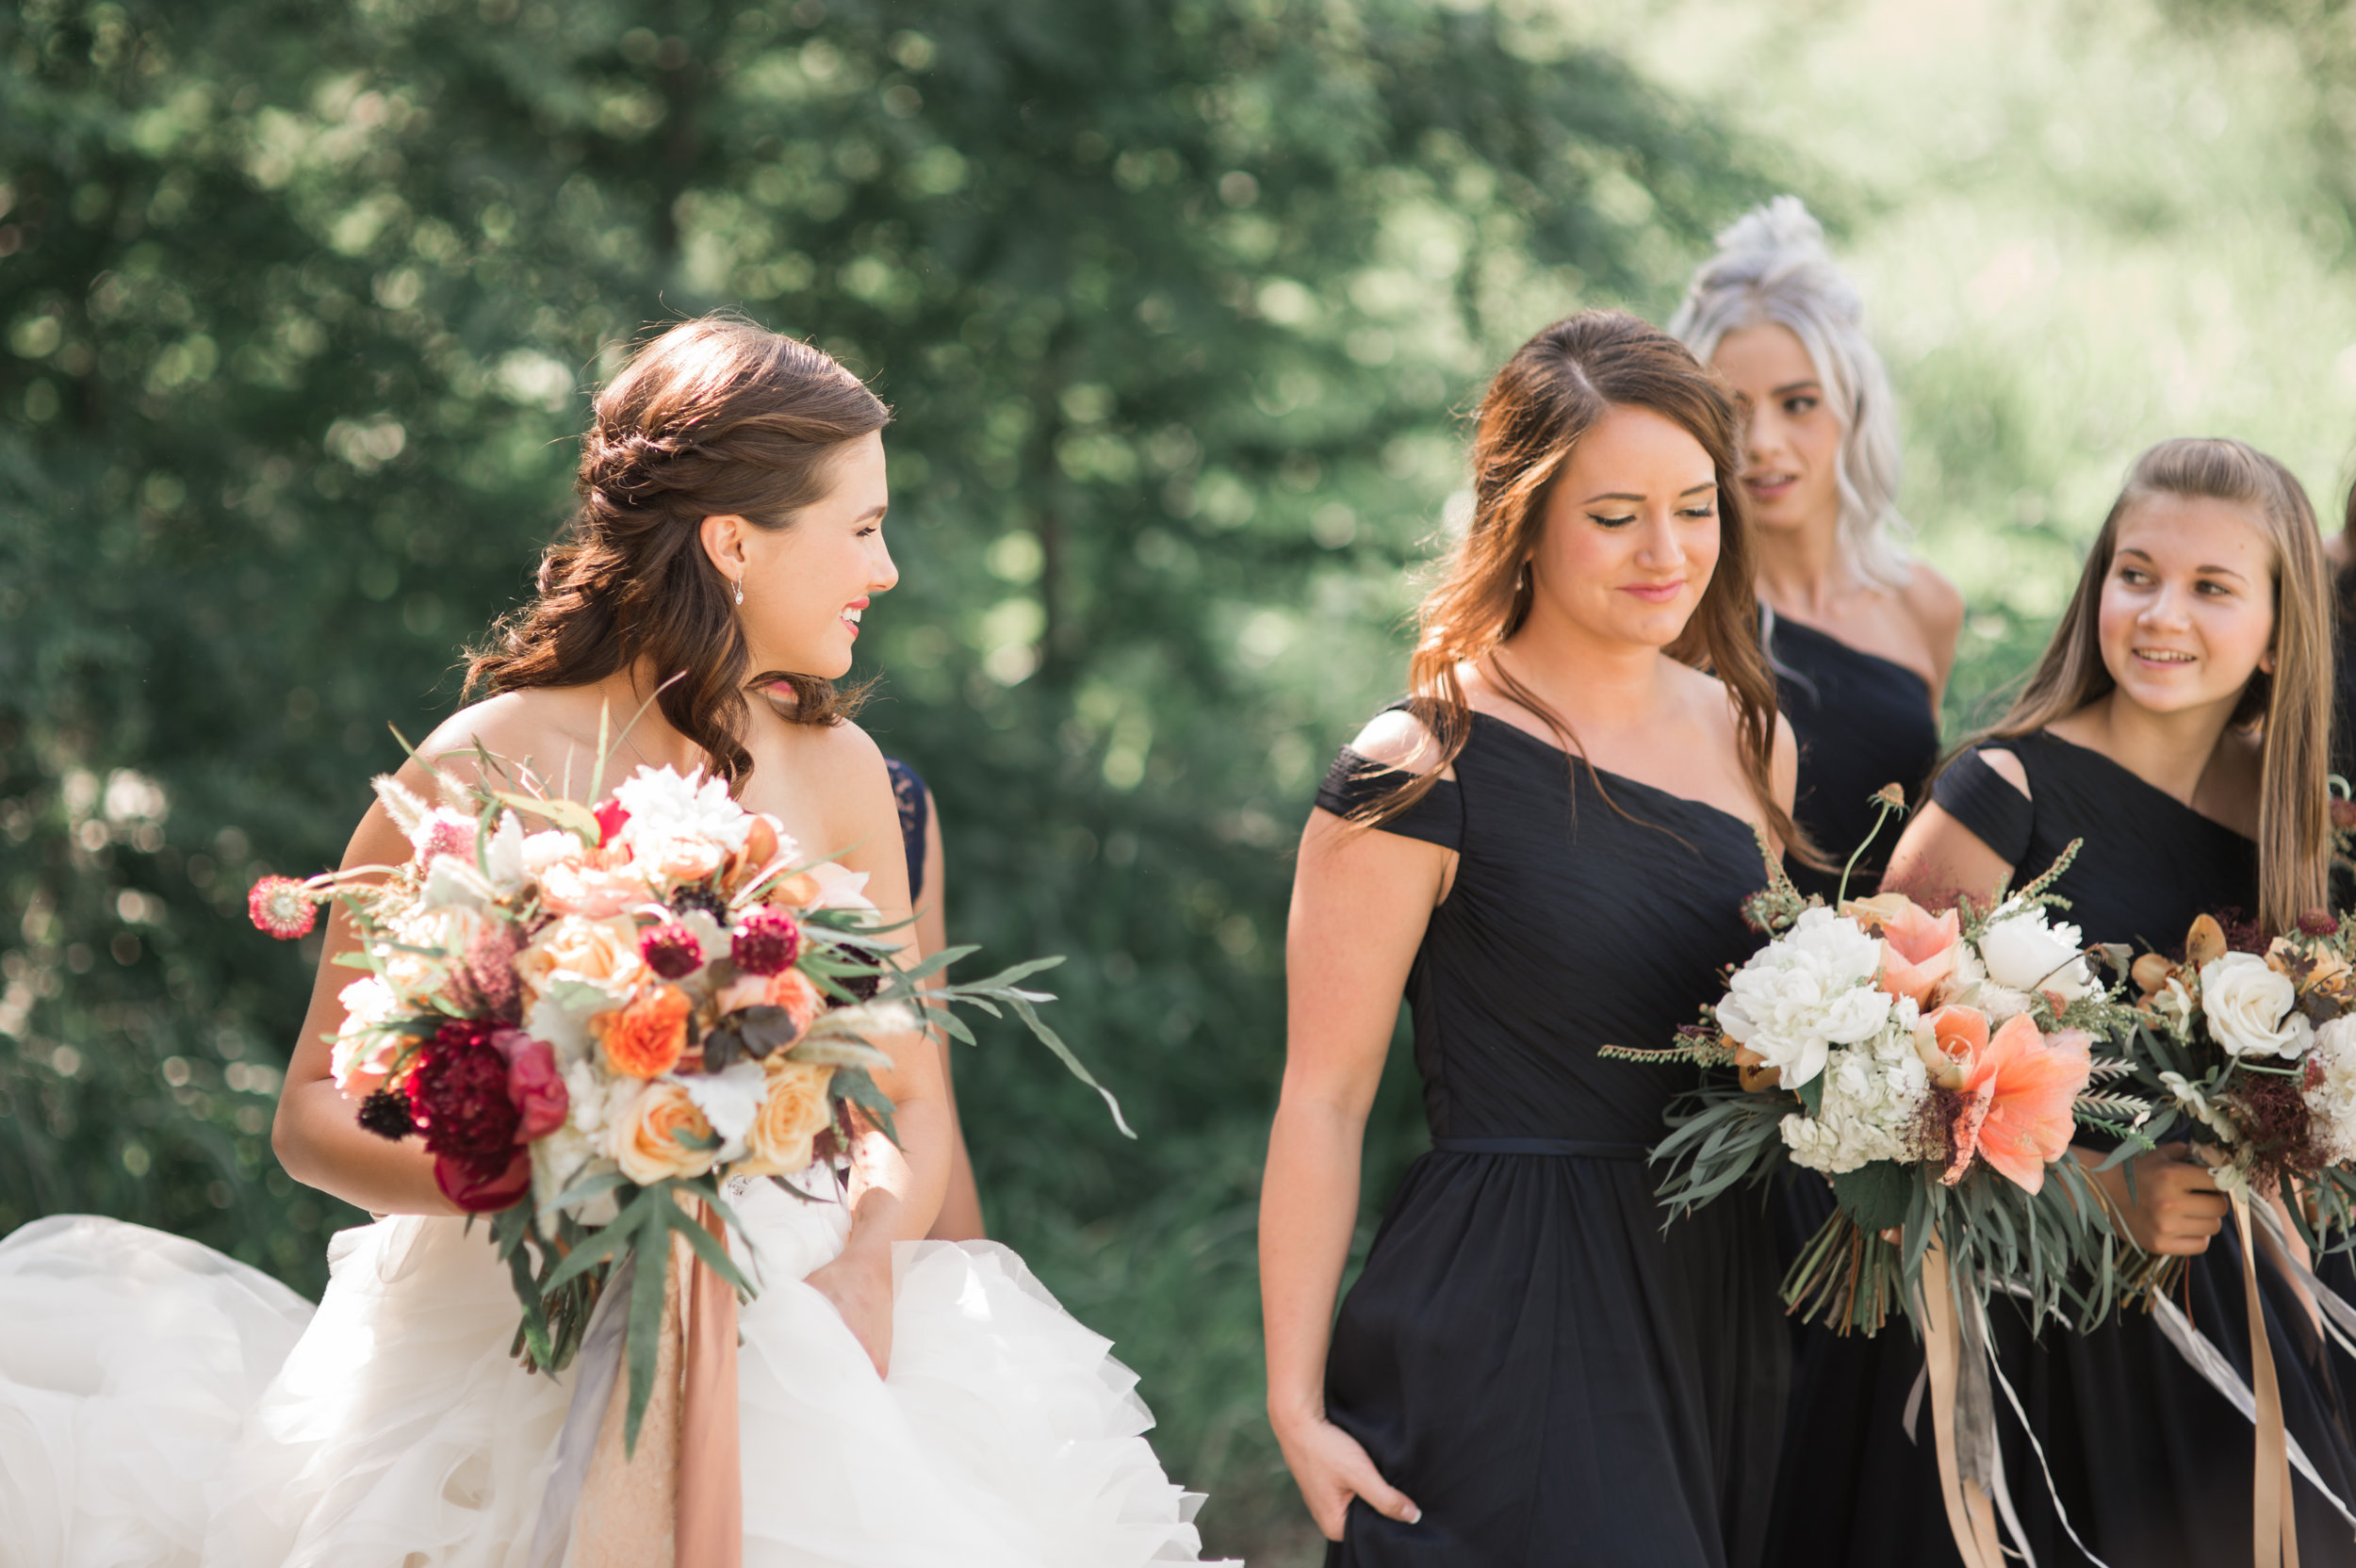 parie Designs bridal and event planning